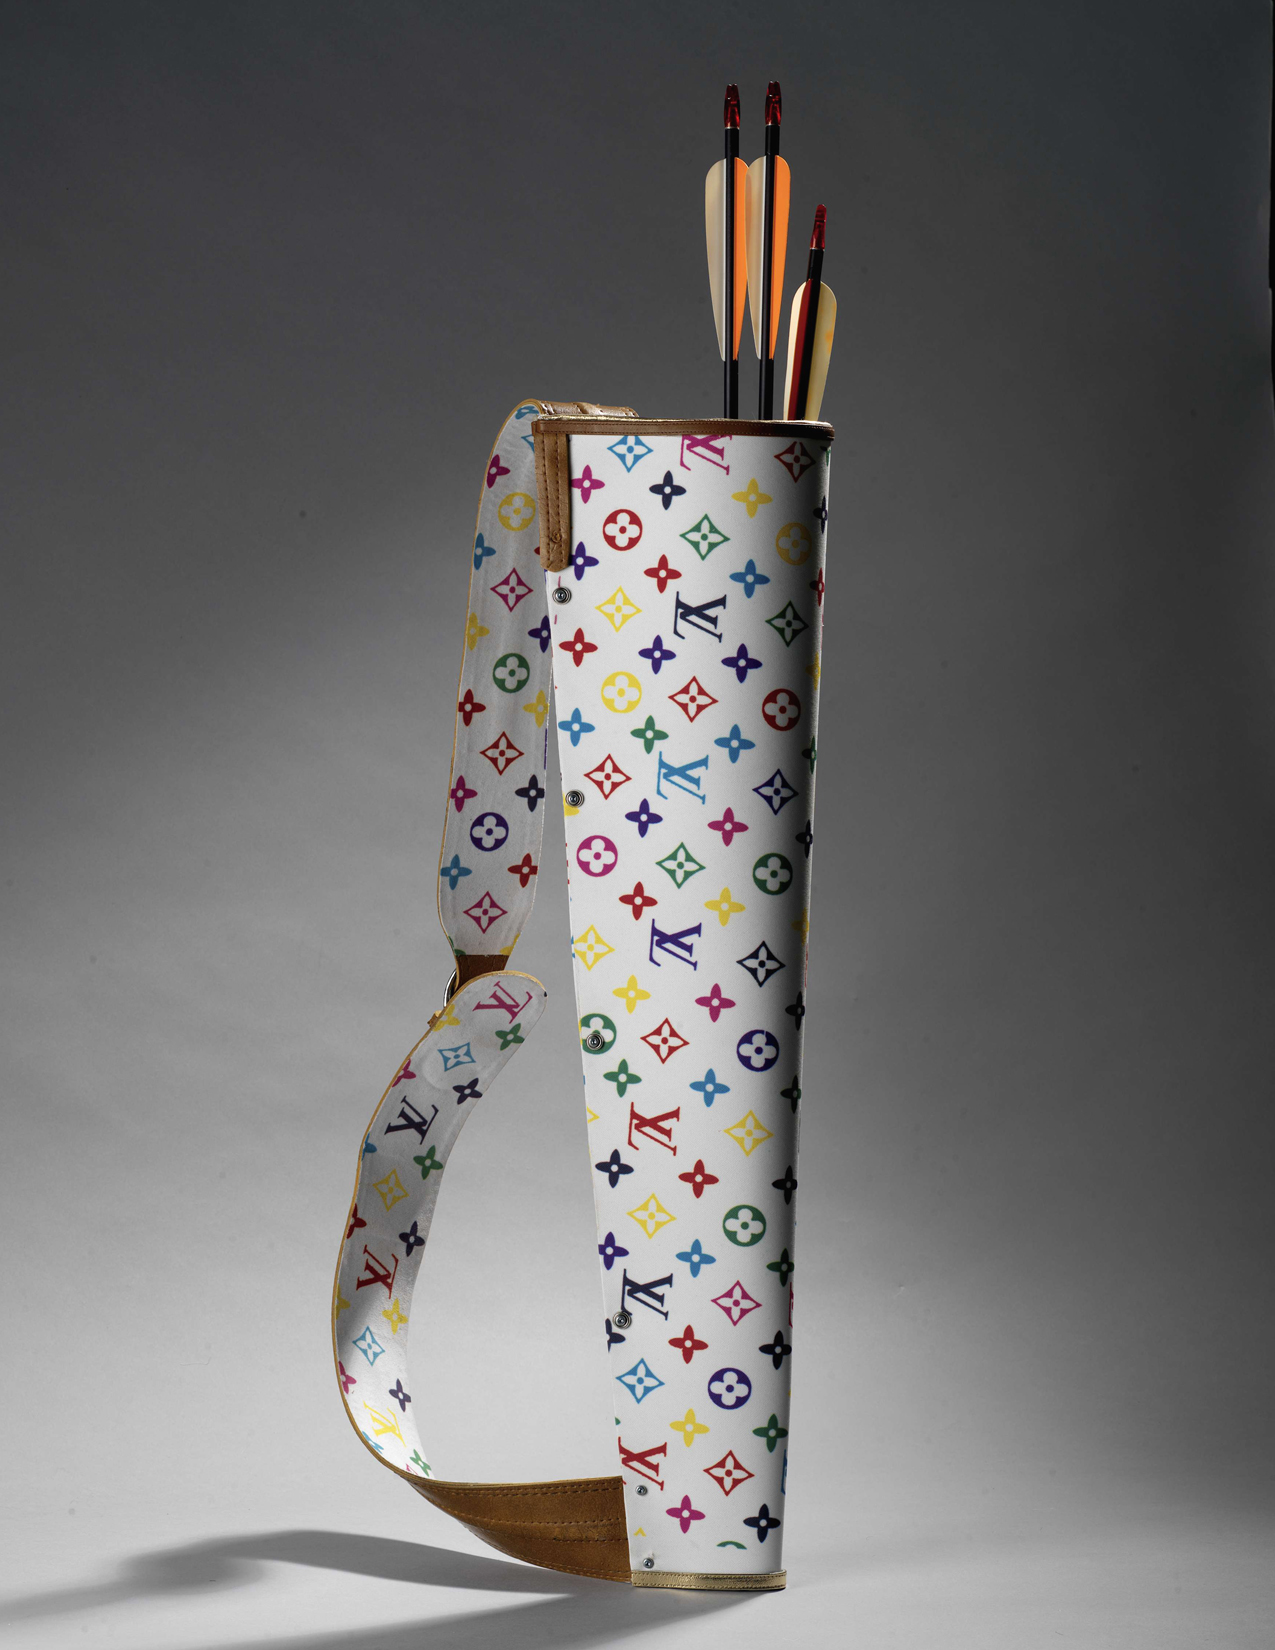 Kent Monkman- LV Quiver made for installation at the Art Gallery of Ontario and the Royal Ontario Museum.